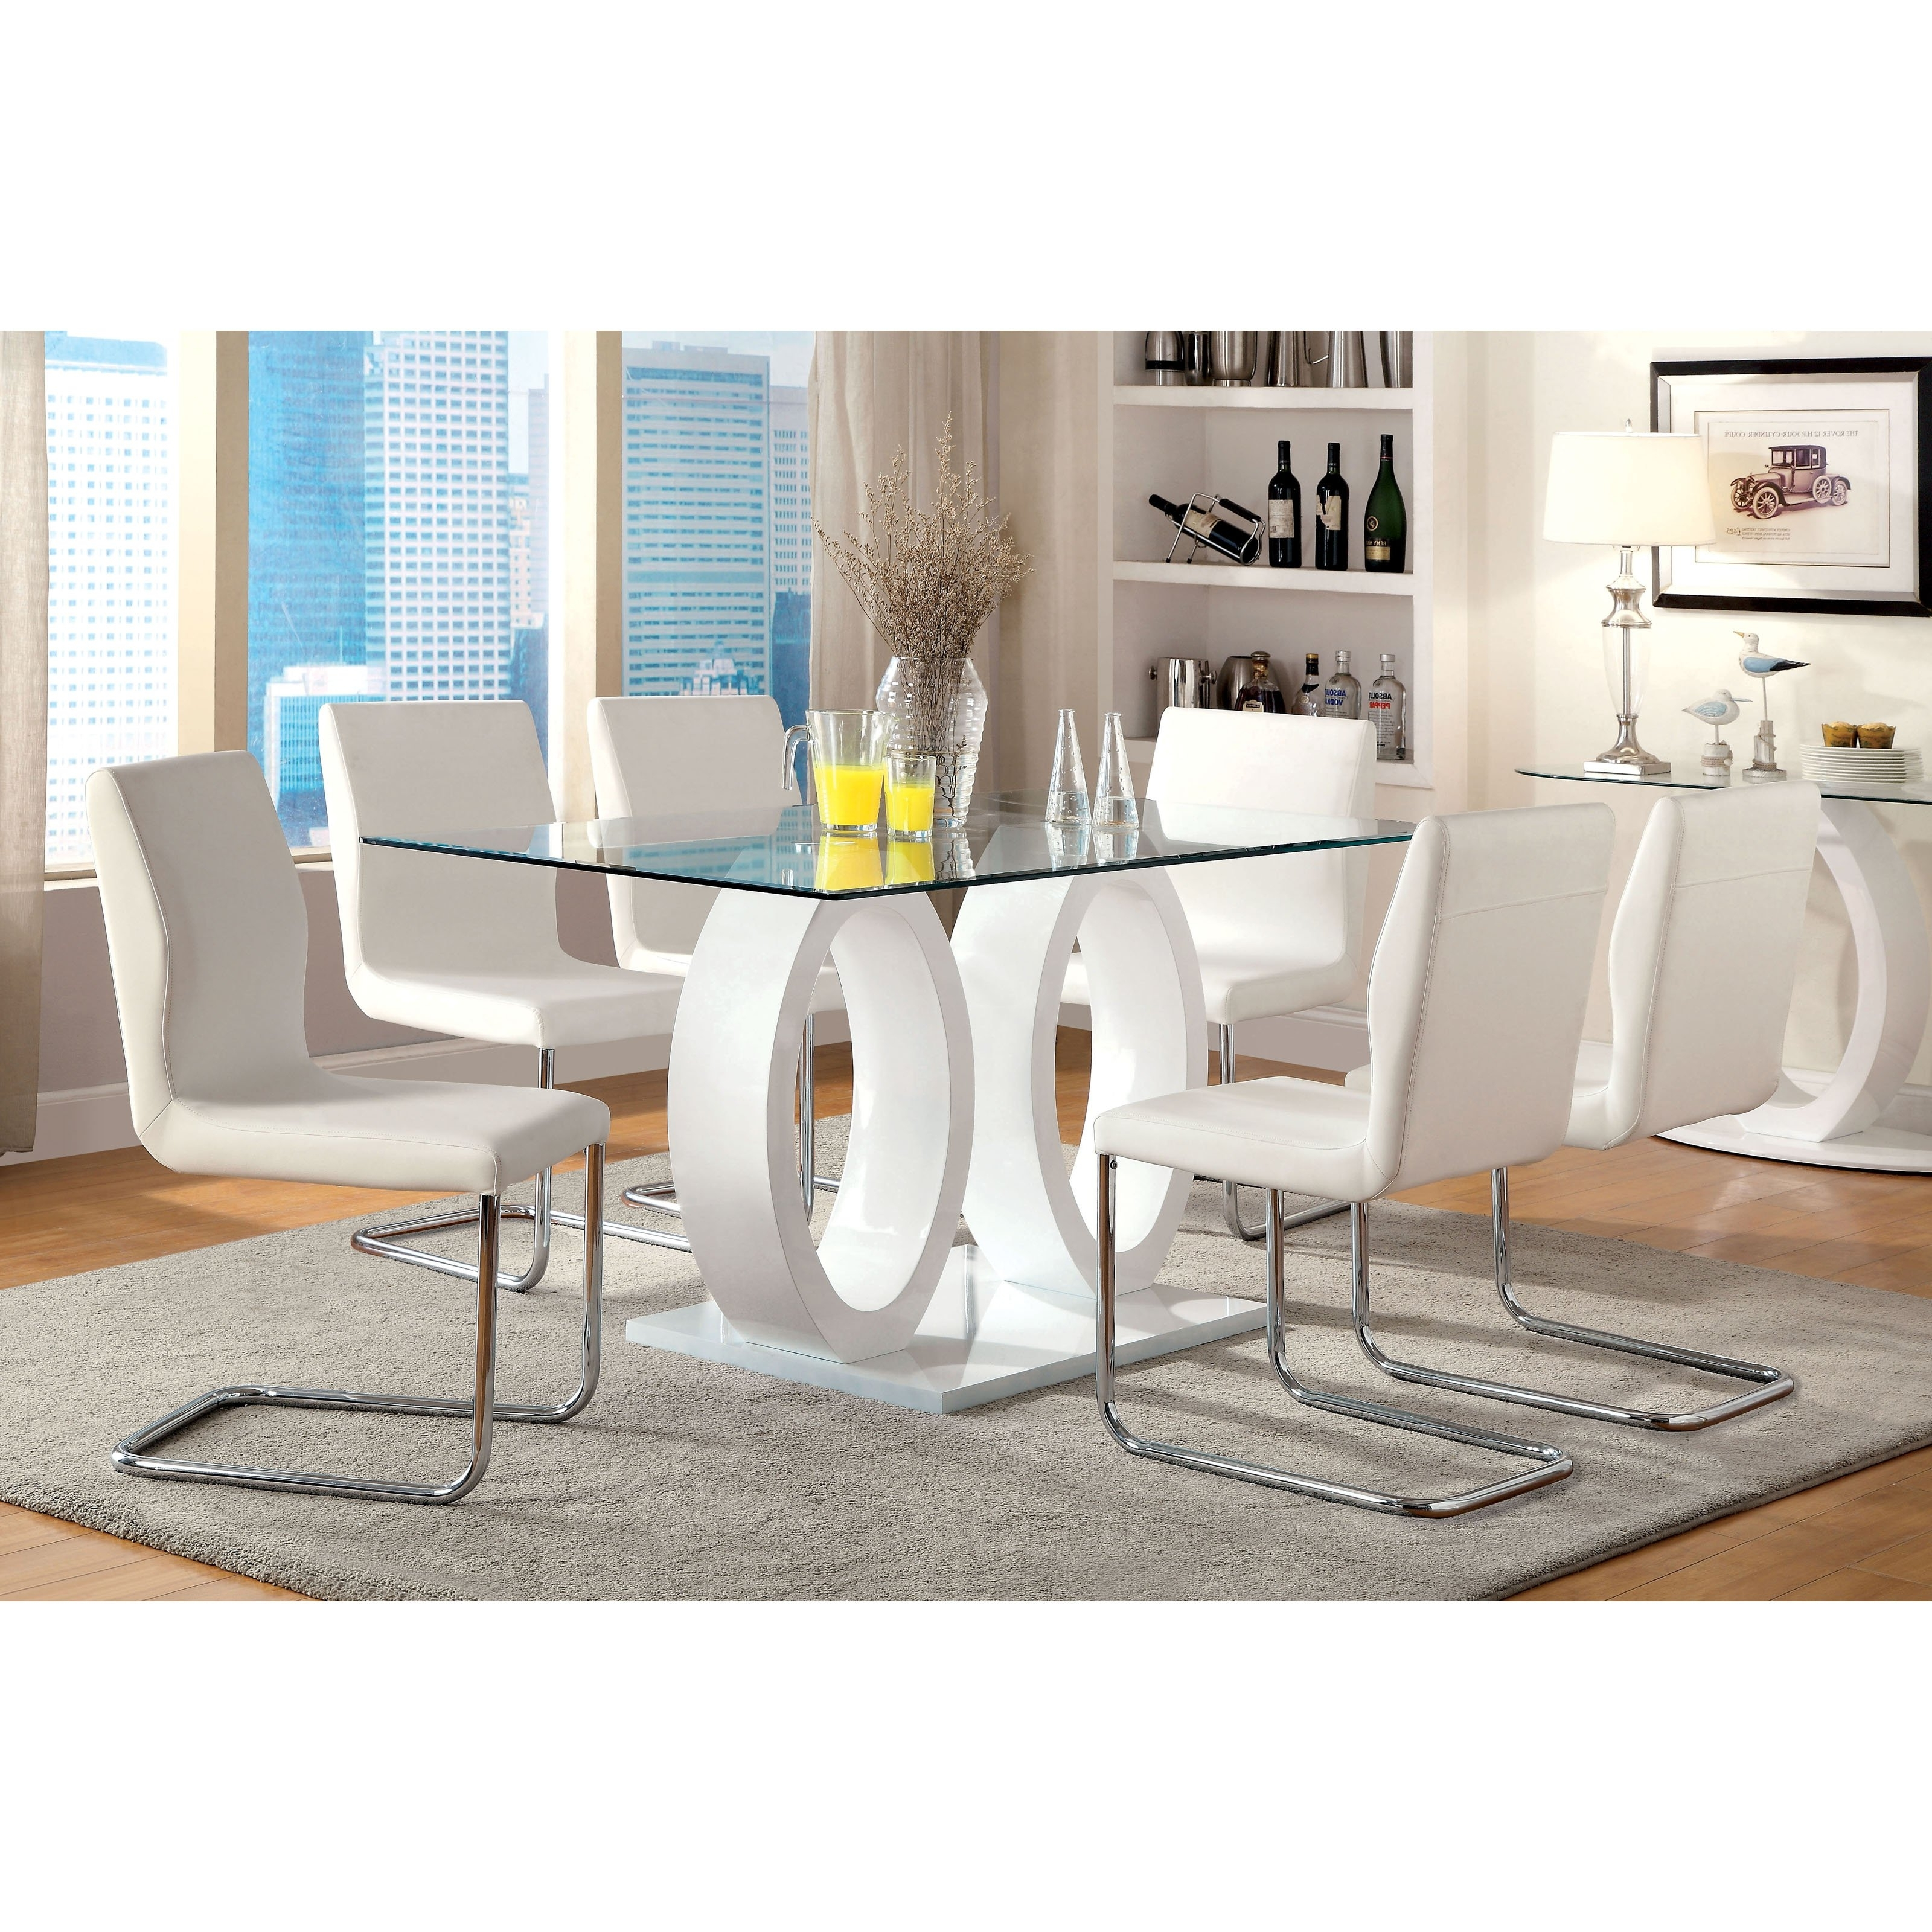 Trendy White Dining Tables Sets Regarding Furniture Of America Damore Contemporary 7 Piece High Gloss Dining (View 19 of 25)